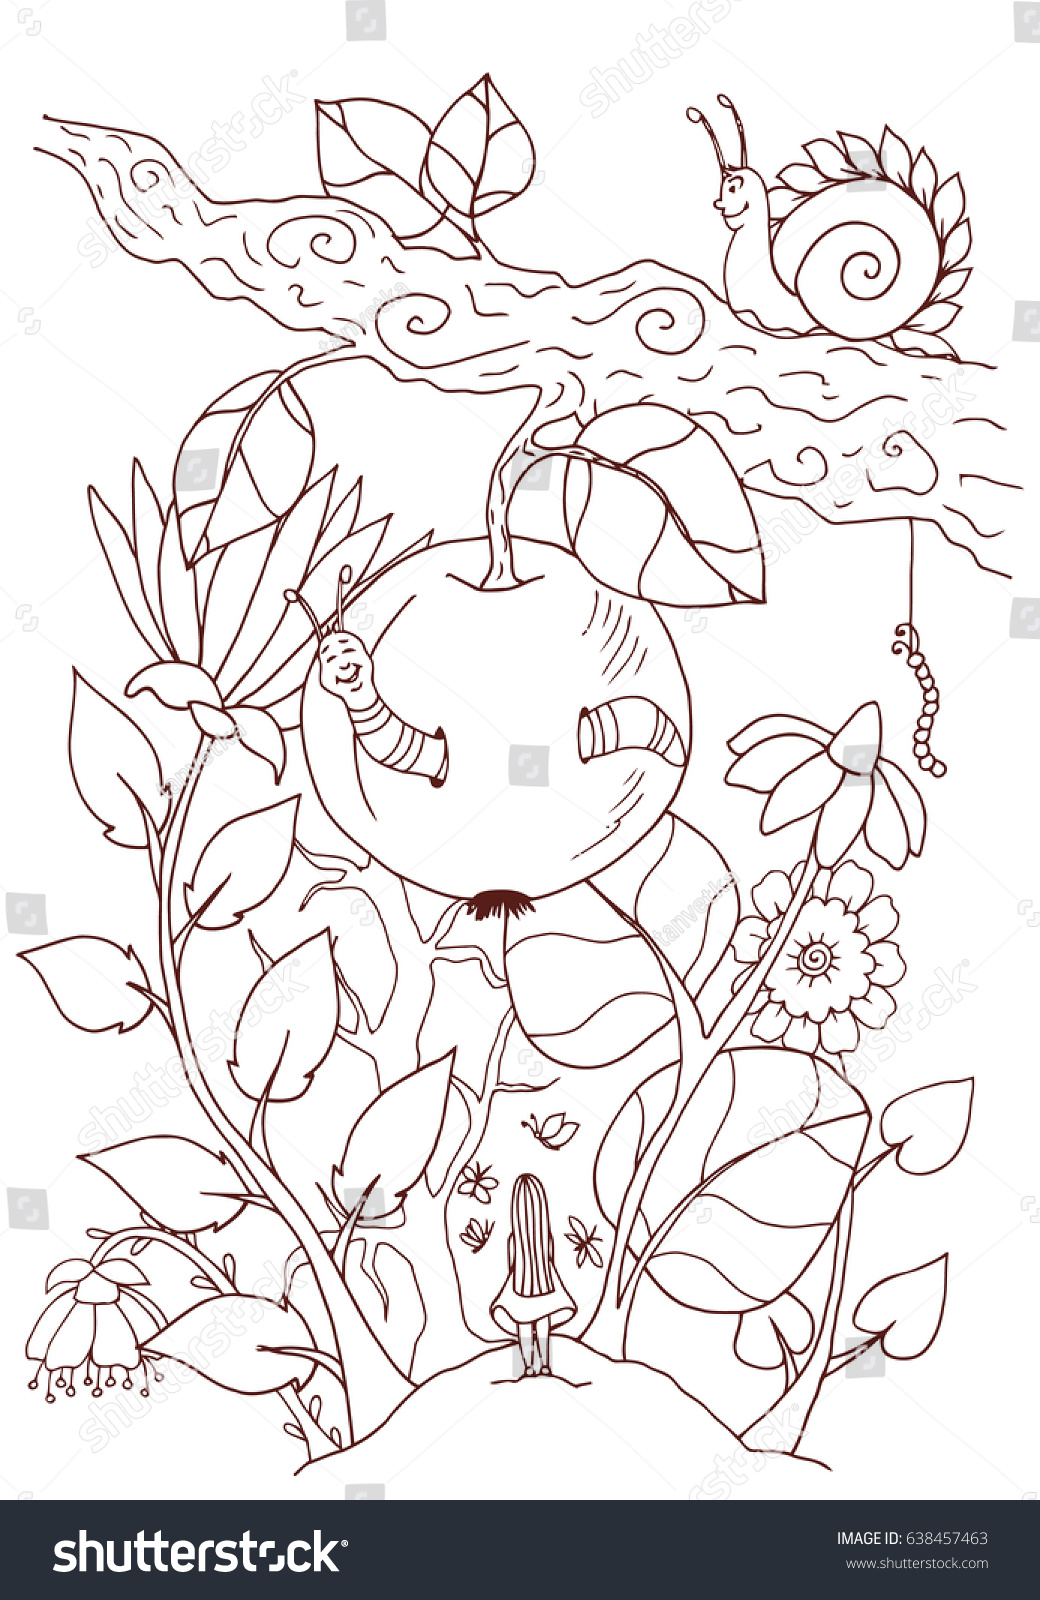 vector illustration coloring page anti stress stock vector